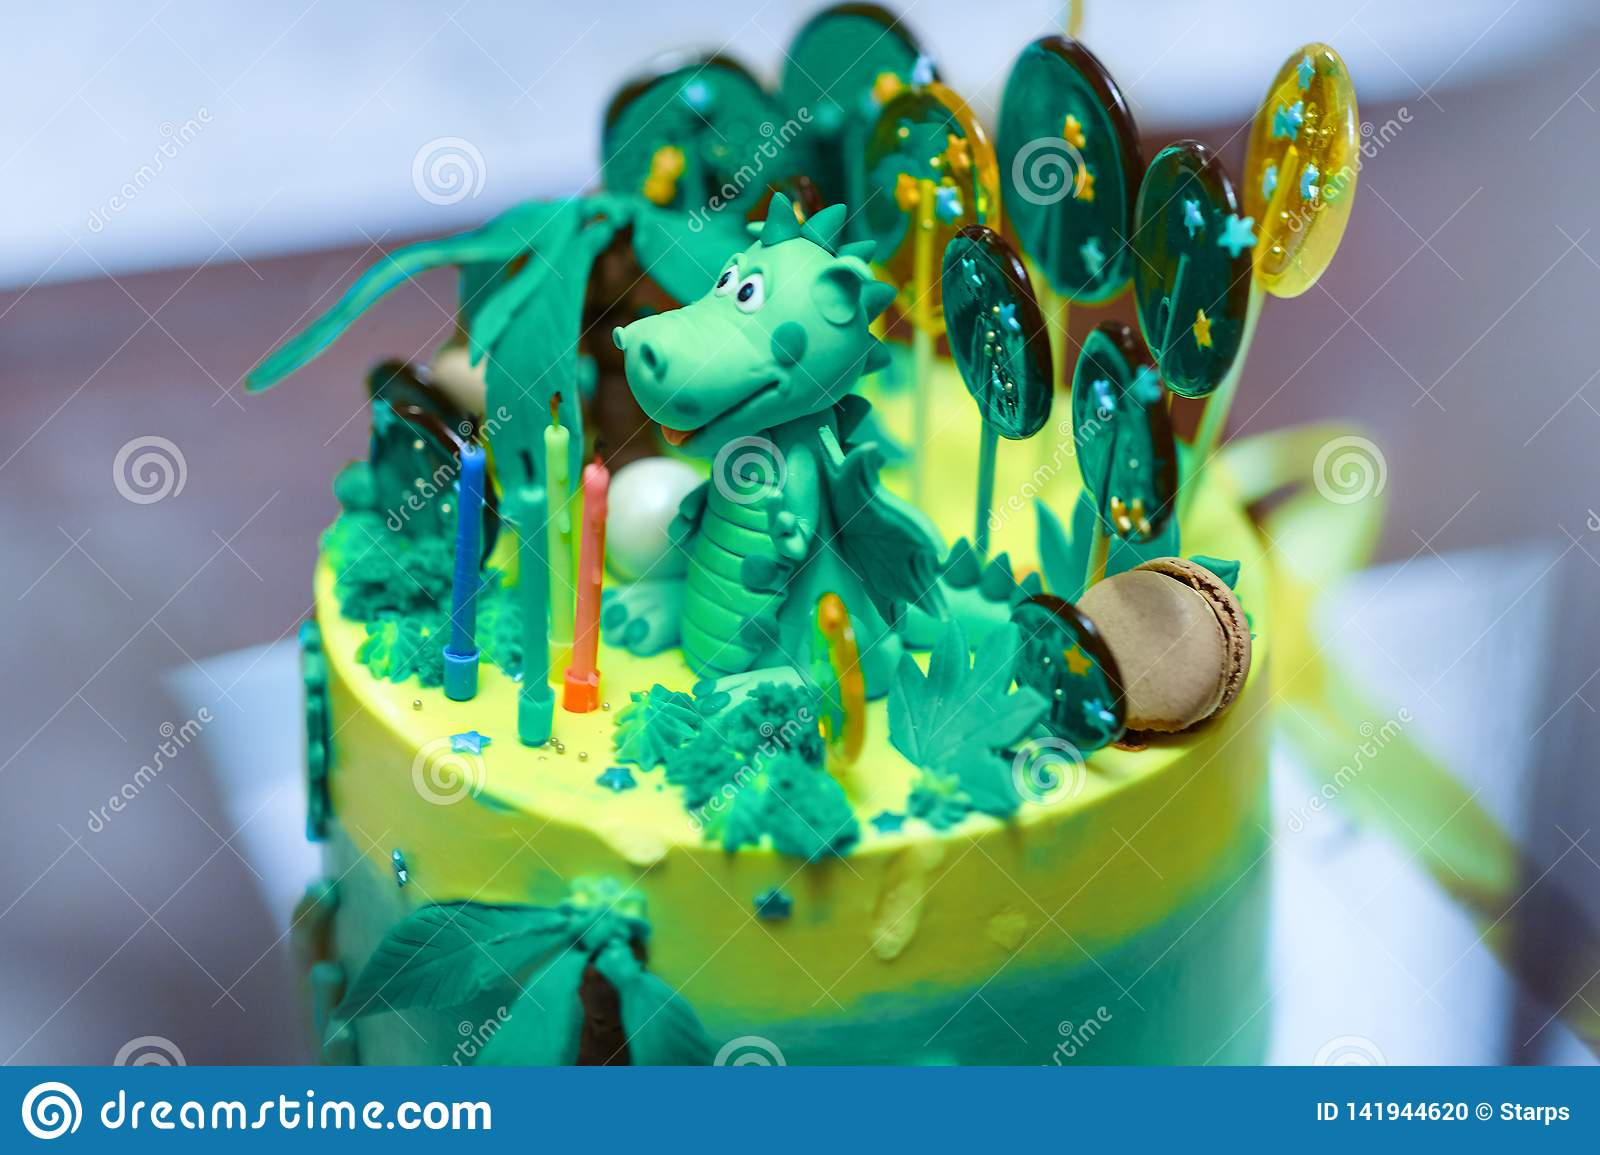 Sophisticatedly designed homemade Birthday cake with Dinosaur figure between the sweeties, green and yellow colors.